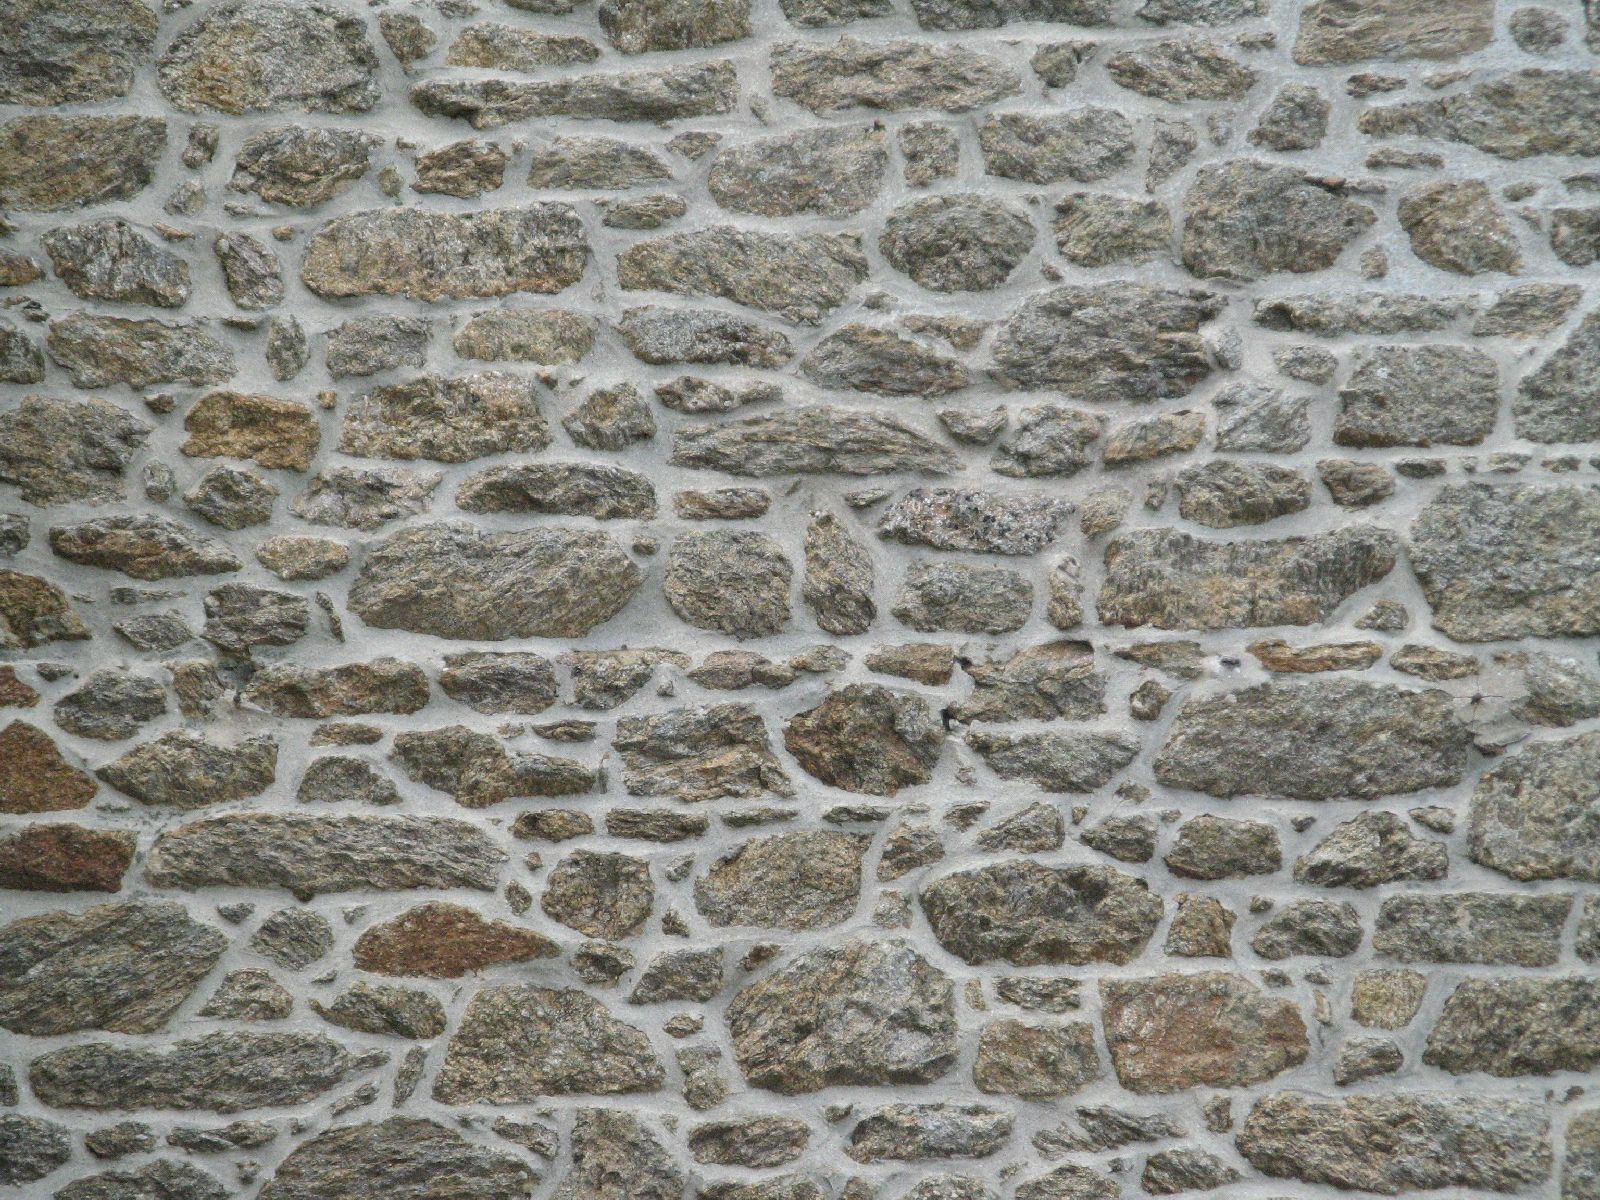 Stone wall texture google search backgrounds textures wallpapers pinterest wall textures - Flaunt your natural stone wall finishes ...